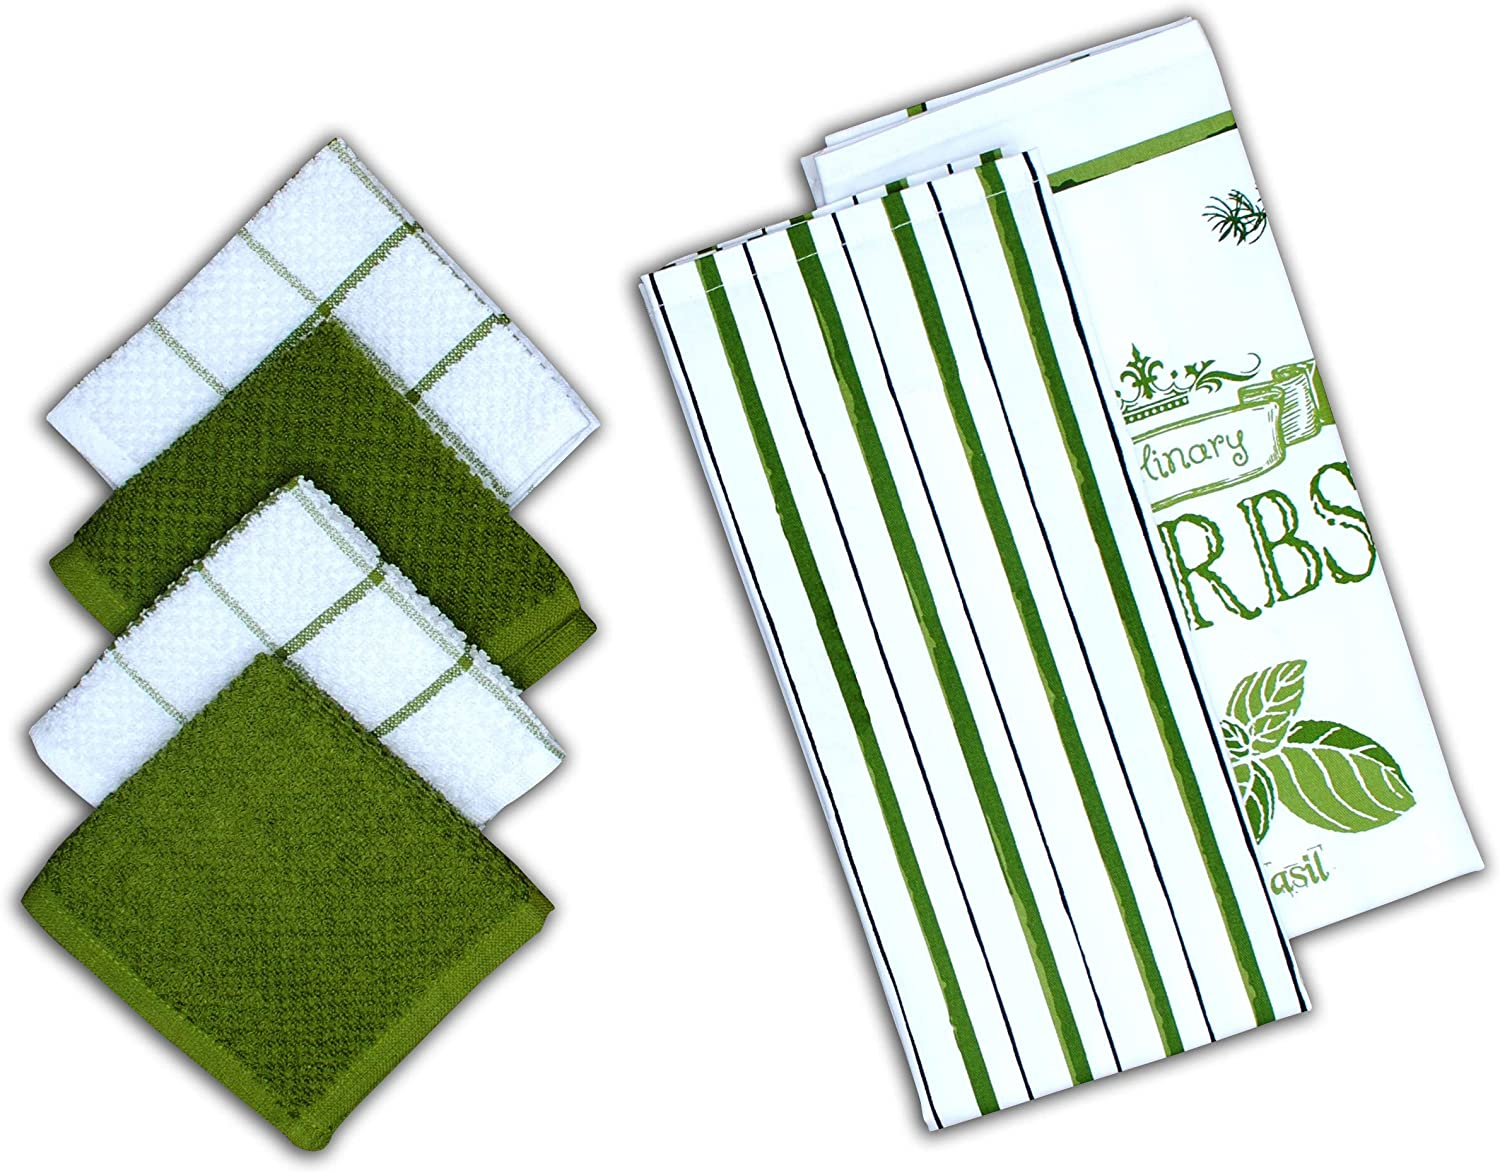 """AMOUR INFINI Herb Garden 6 Pack Kitchen Set   2 Decorative Kitchen Towels (28"""" x 18"""") and 4 Terry Dishcloths (12"""" x 12"""")   100% Cotton Machine Washable   Super-Soft and Ultra Absorbent   Green"""